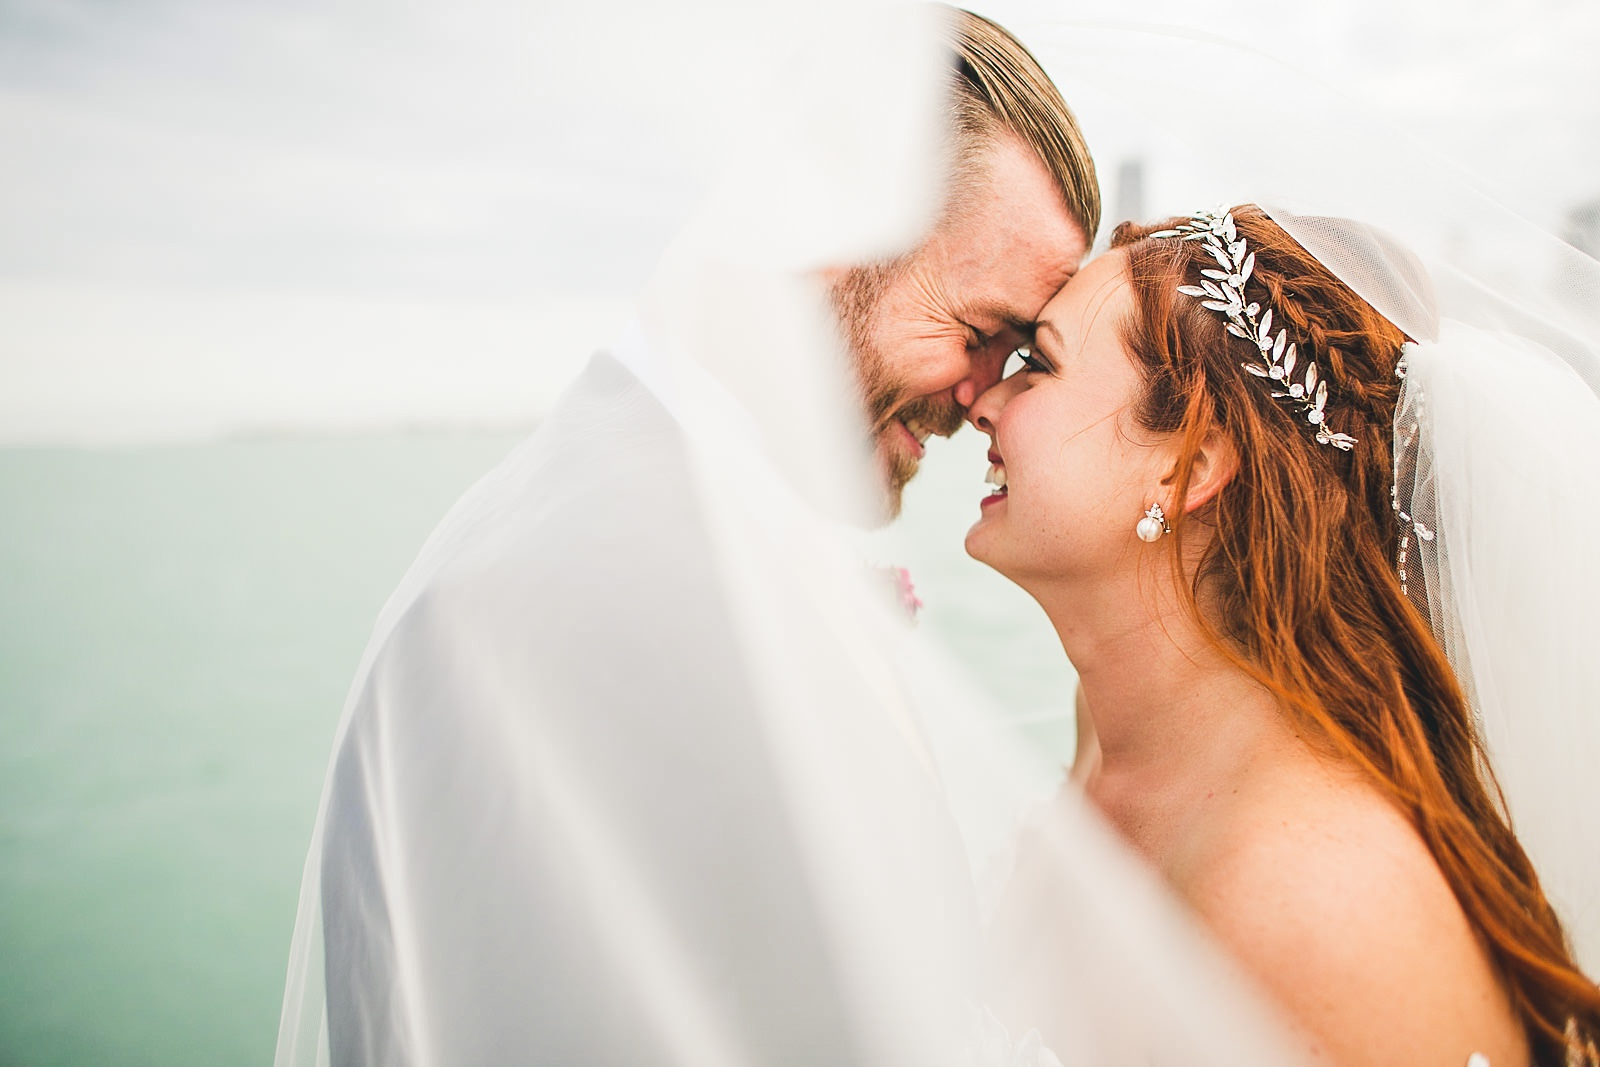 47 chicago wedding photos with veil - Hilton Chicago Wedding Photographer // Sarah + Aaron